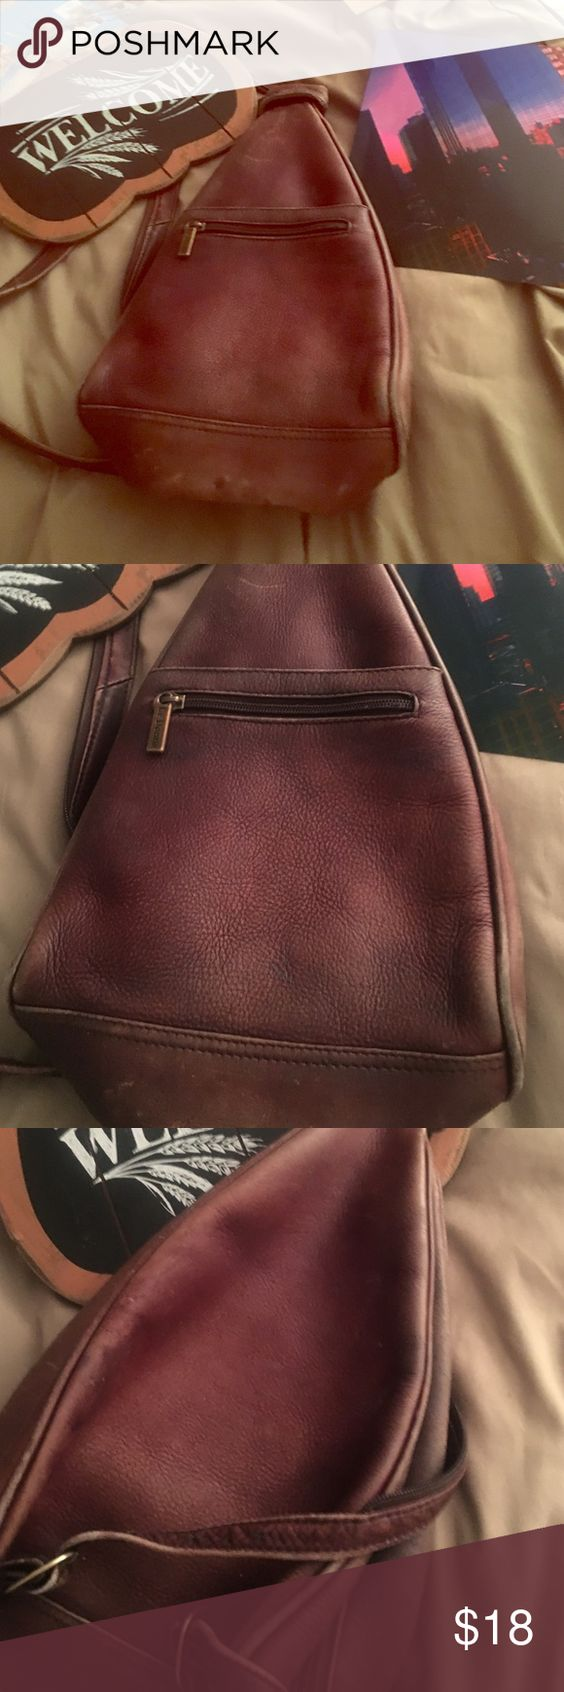 Beautiful pre-loved leather backpack Yes it's been used by me and I loved every minute of it still I'm looking for another one it's vintage baby. Brand Le Donne Vintage Bags Backpacks